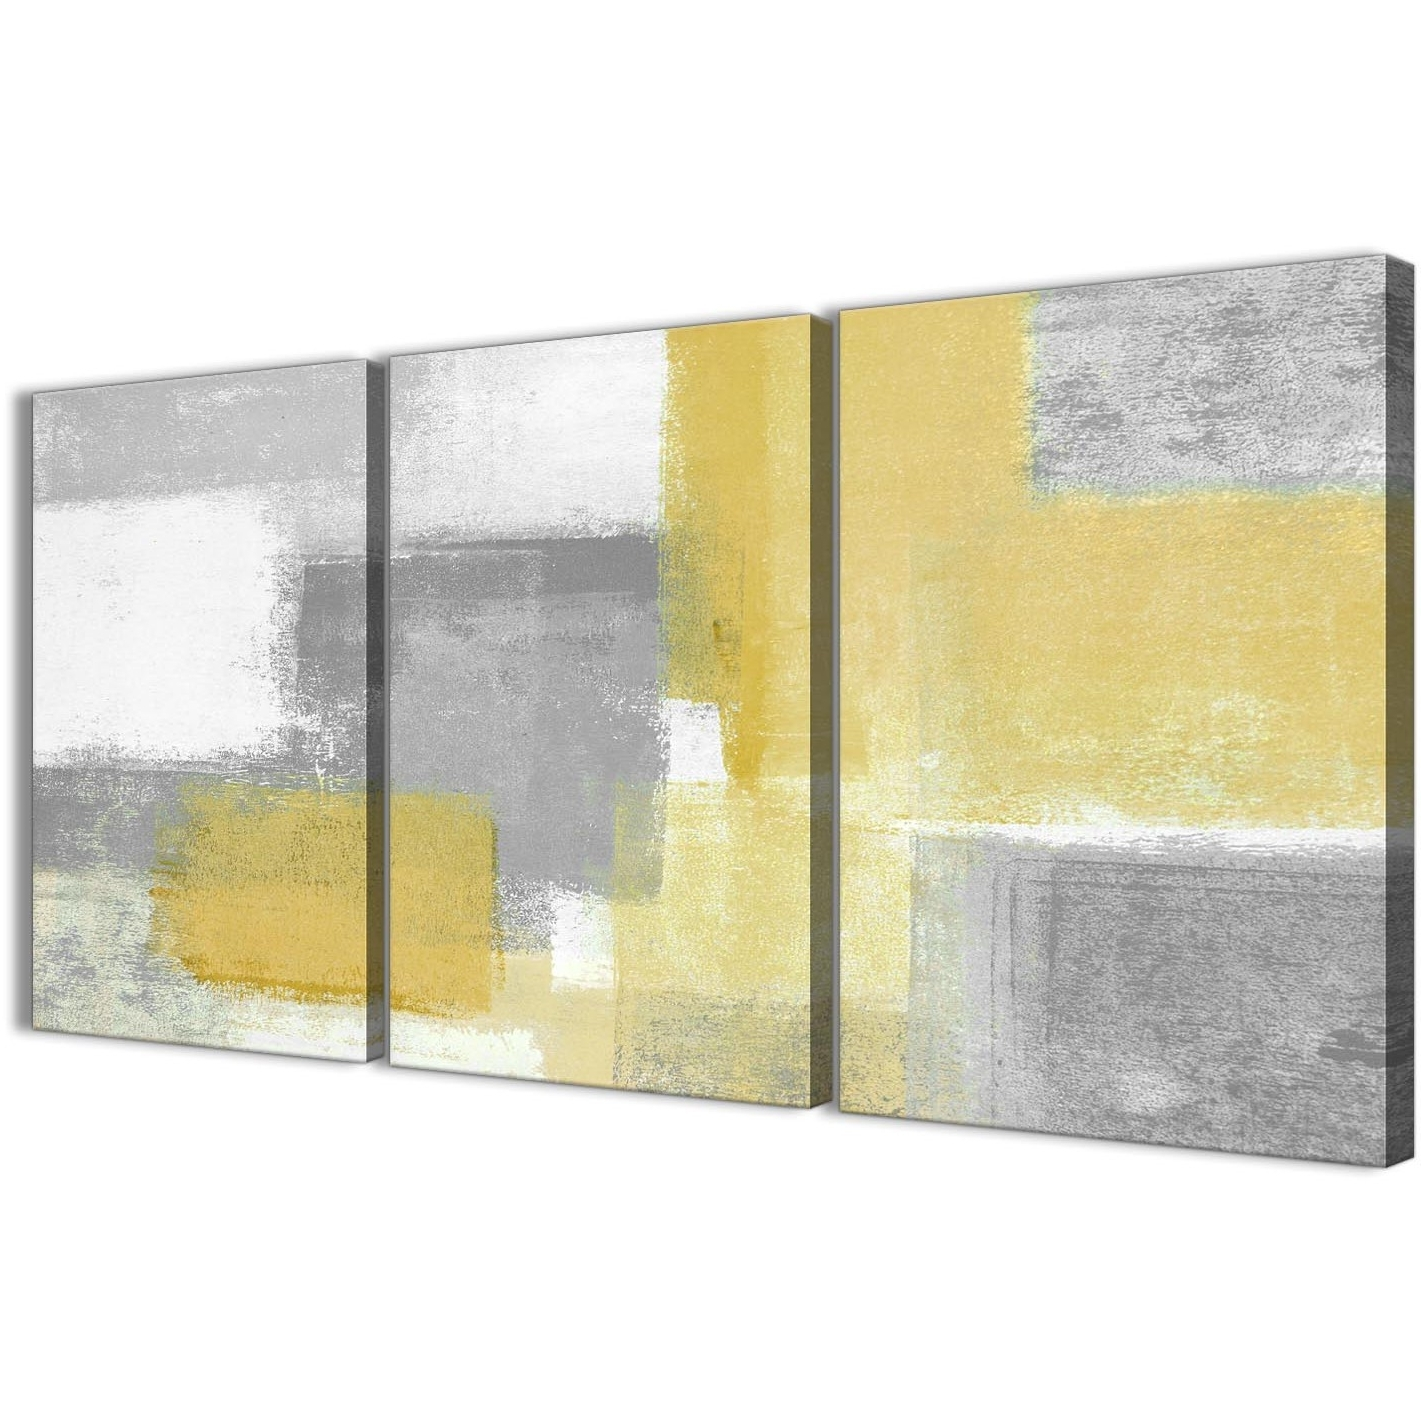 3 Panel Mustard Yellow Grey Kitchen Canvas Wall Art Decor – Abstract For Popular Canvas Wall Art (Gallery 5 of 15)